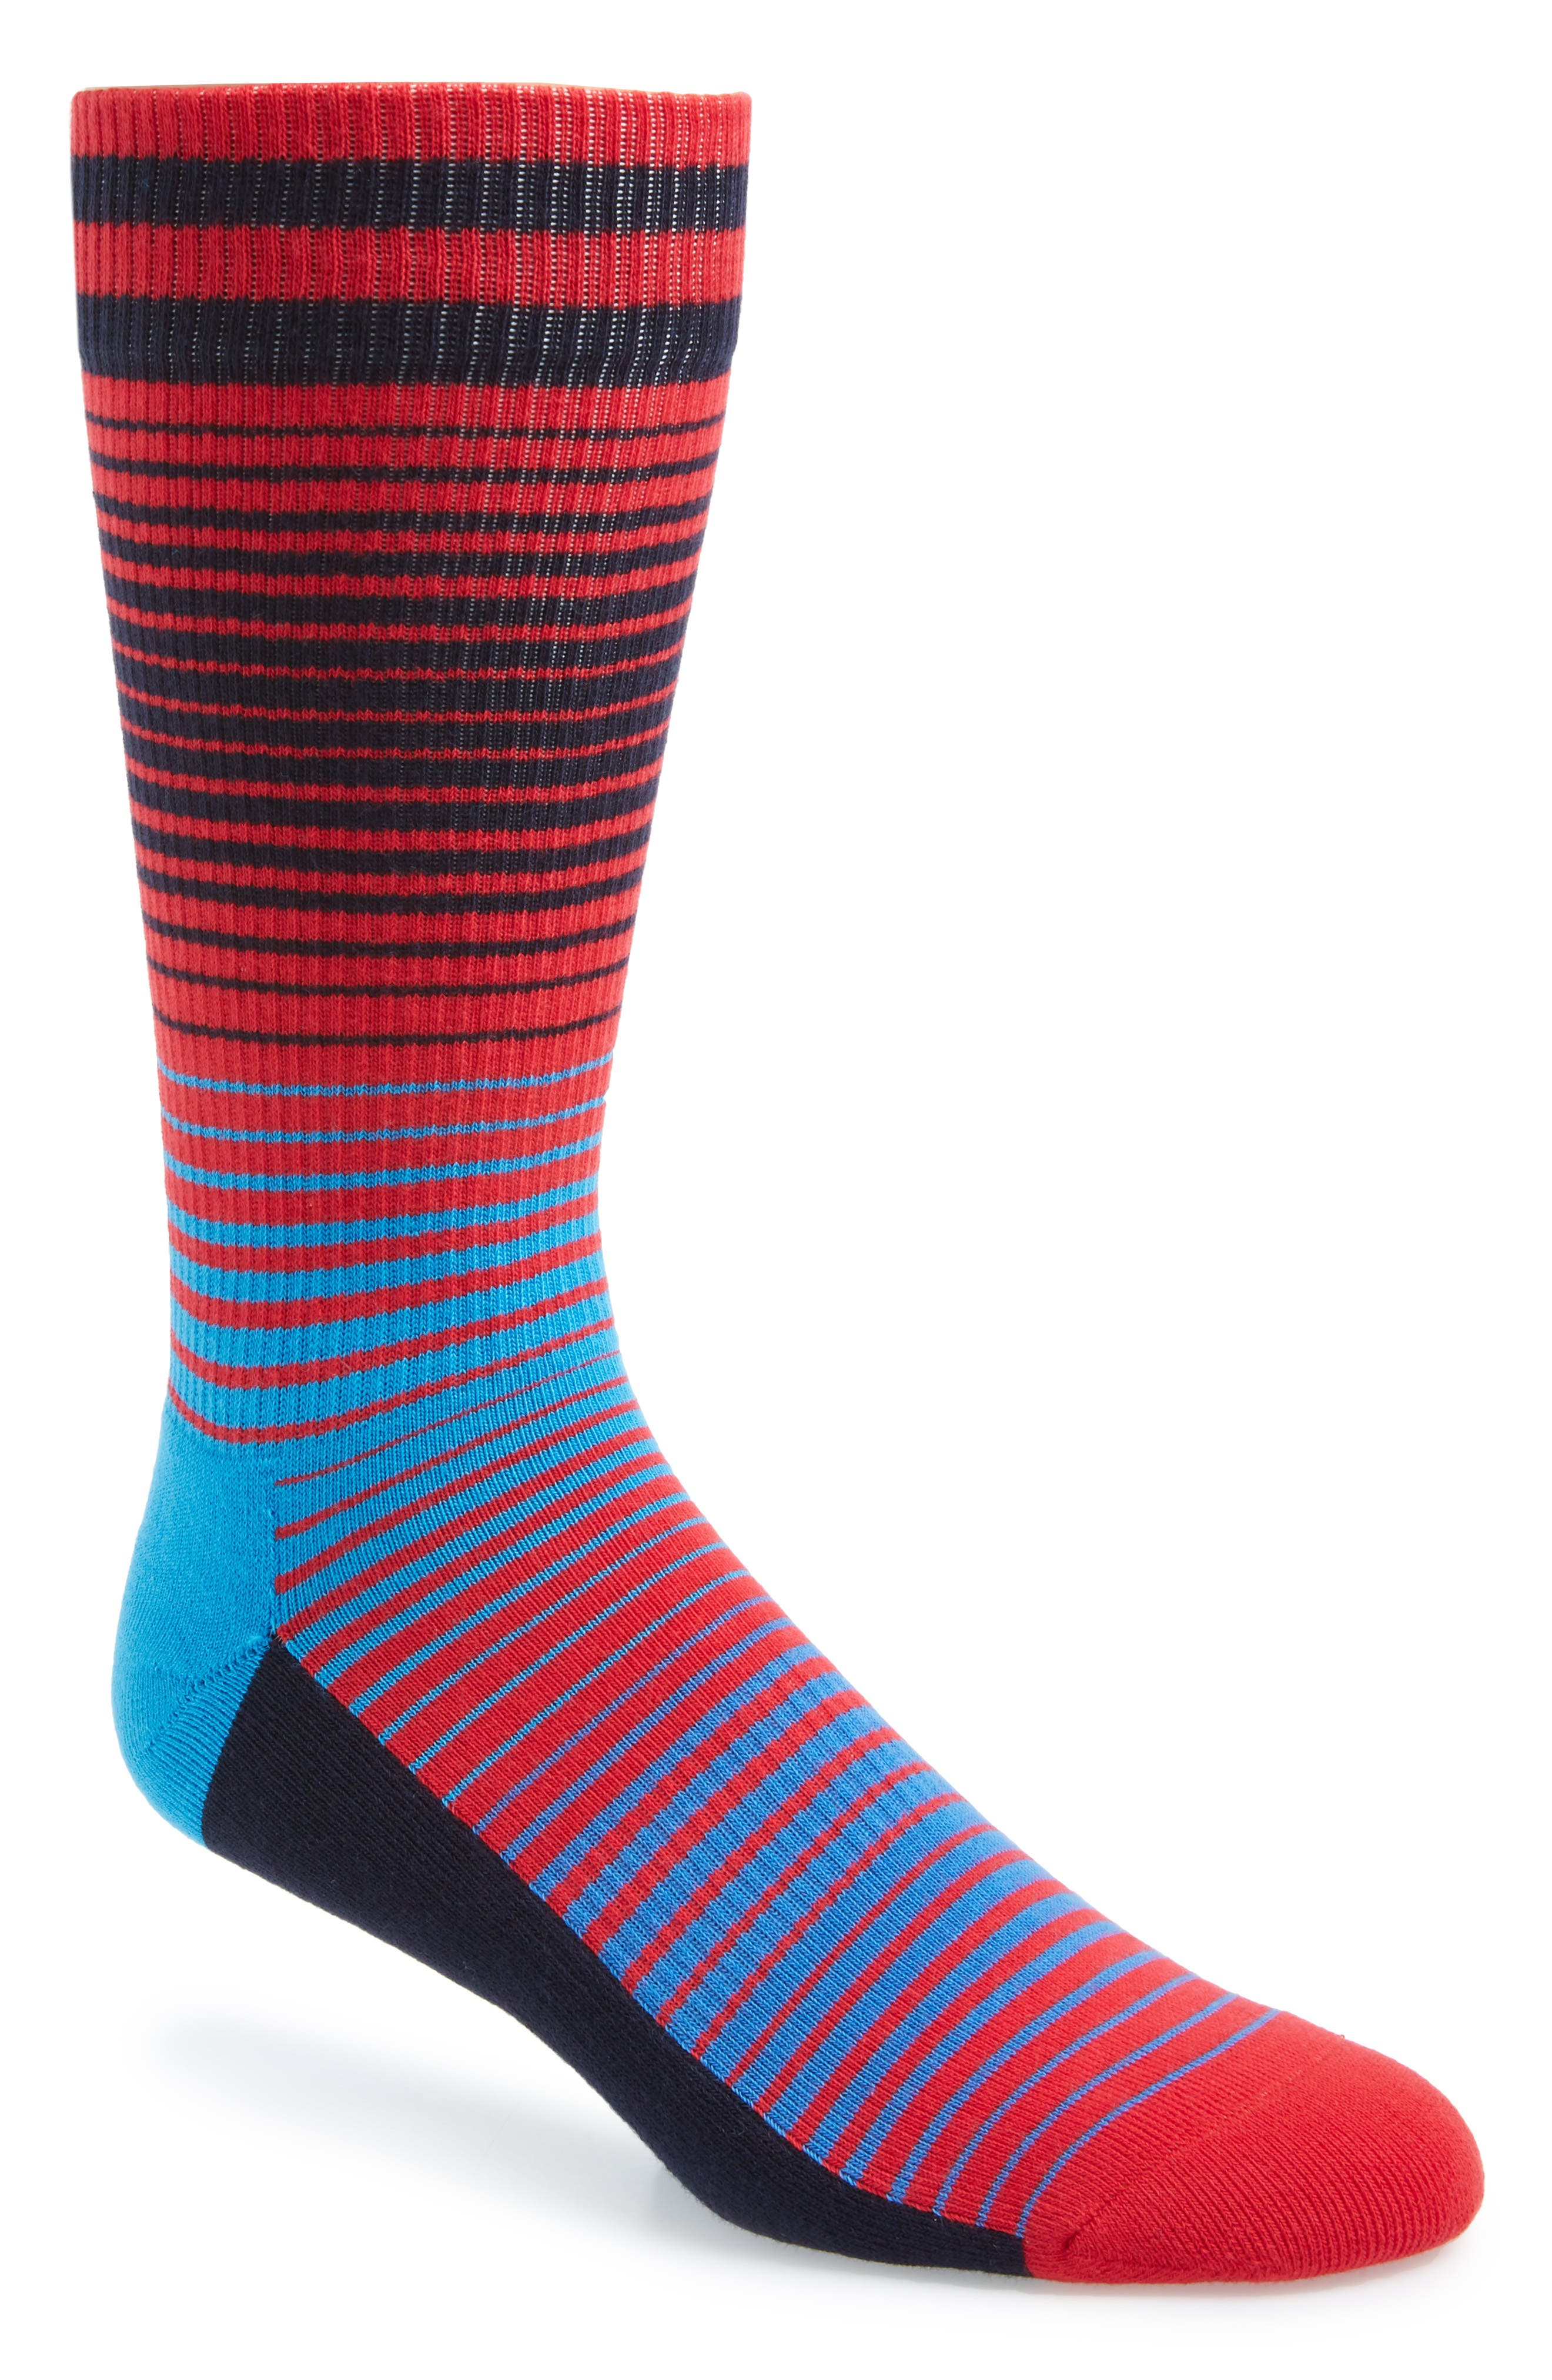 Sunrise Athletic Socks,                         Main,                         color, RED